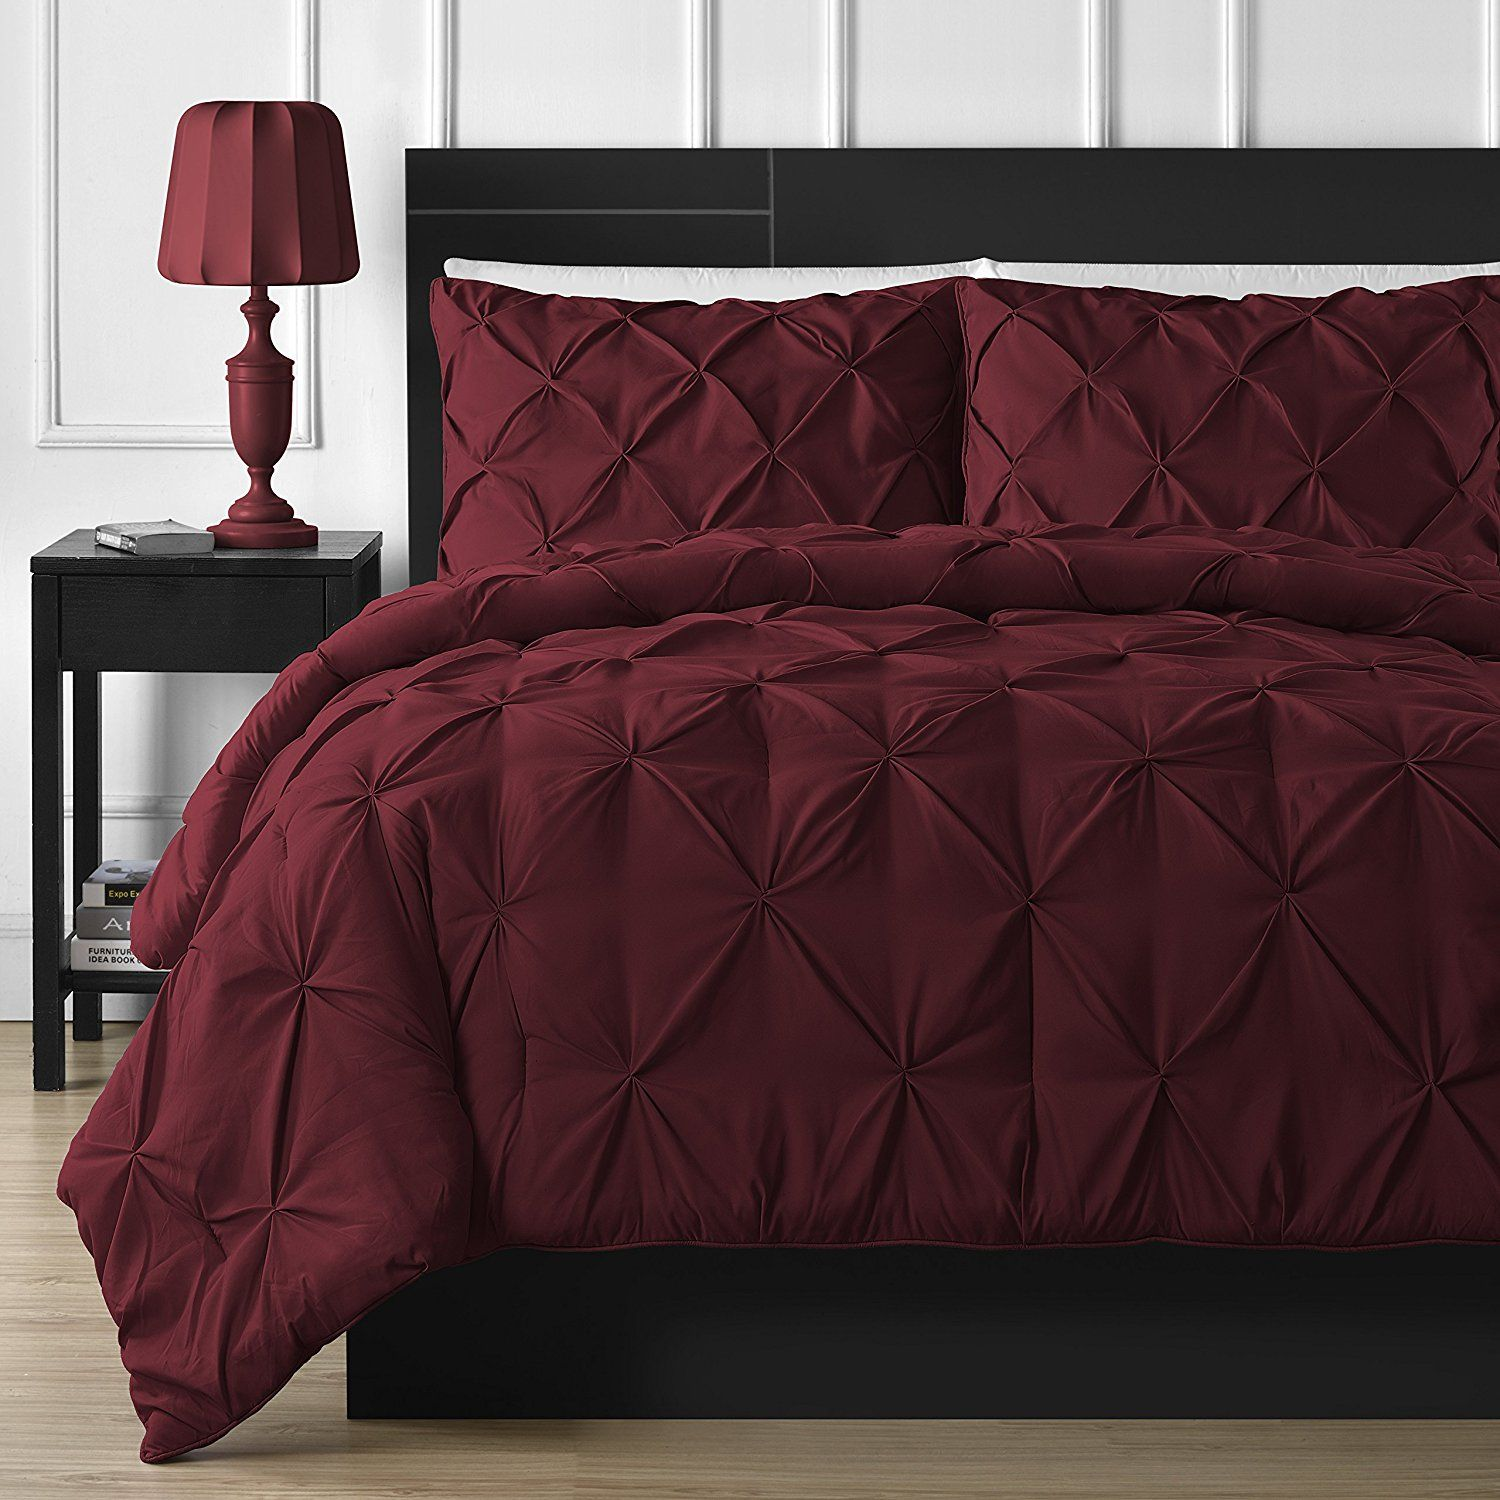 Burgundy Bedding Sets Cheap Sale | Bedroom | Maroon bedding ...